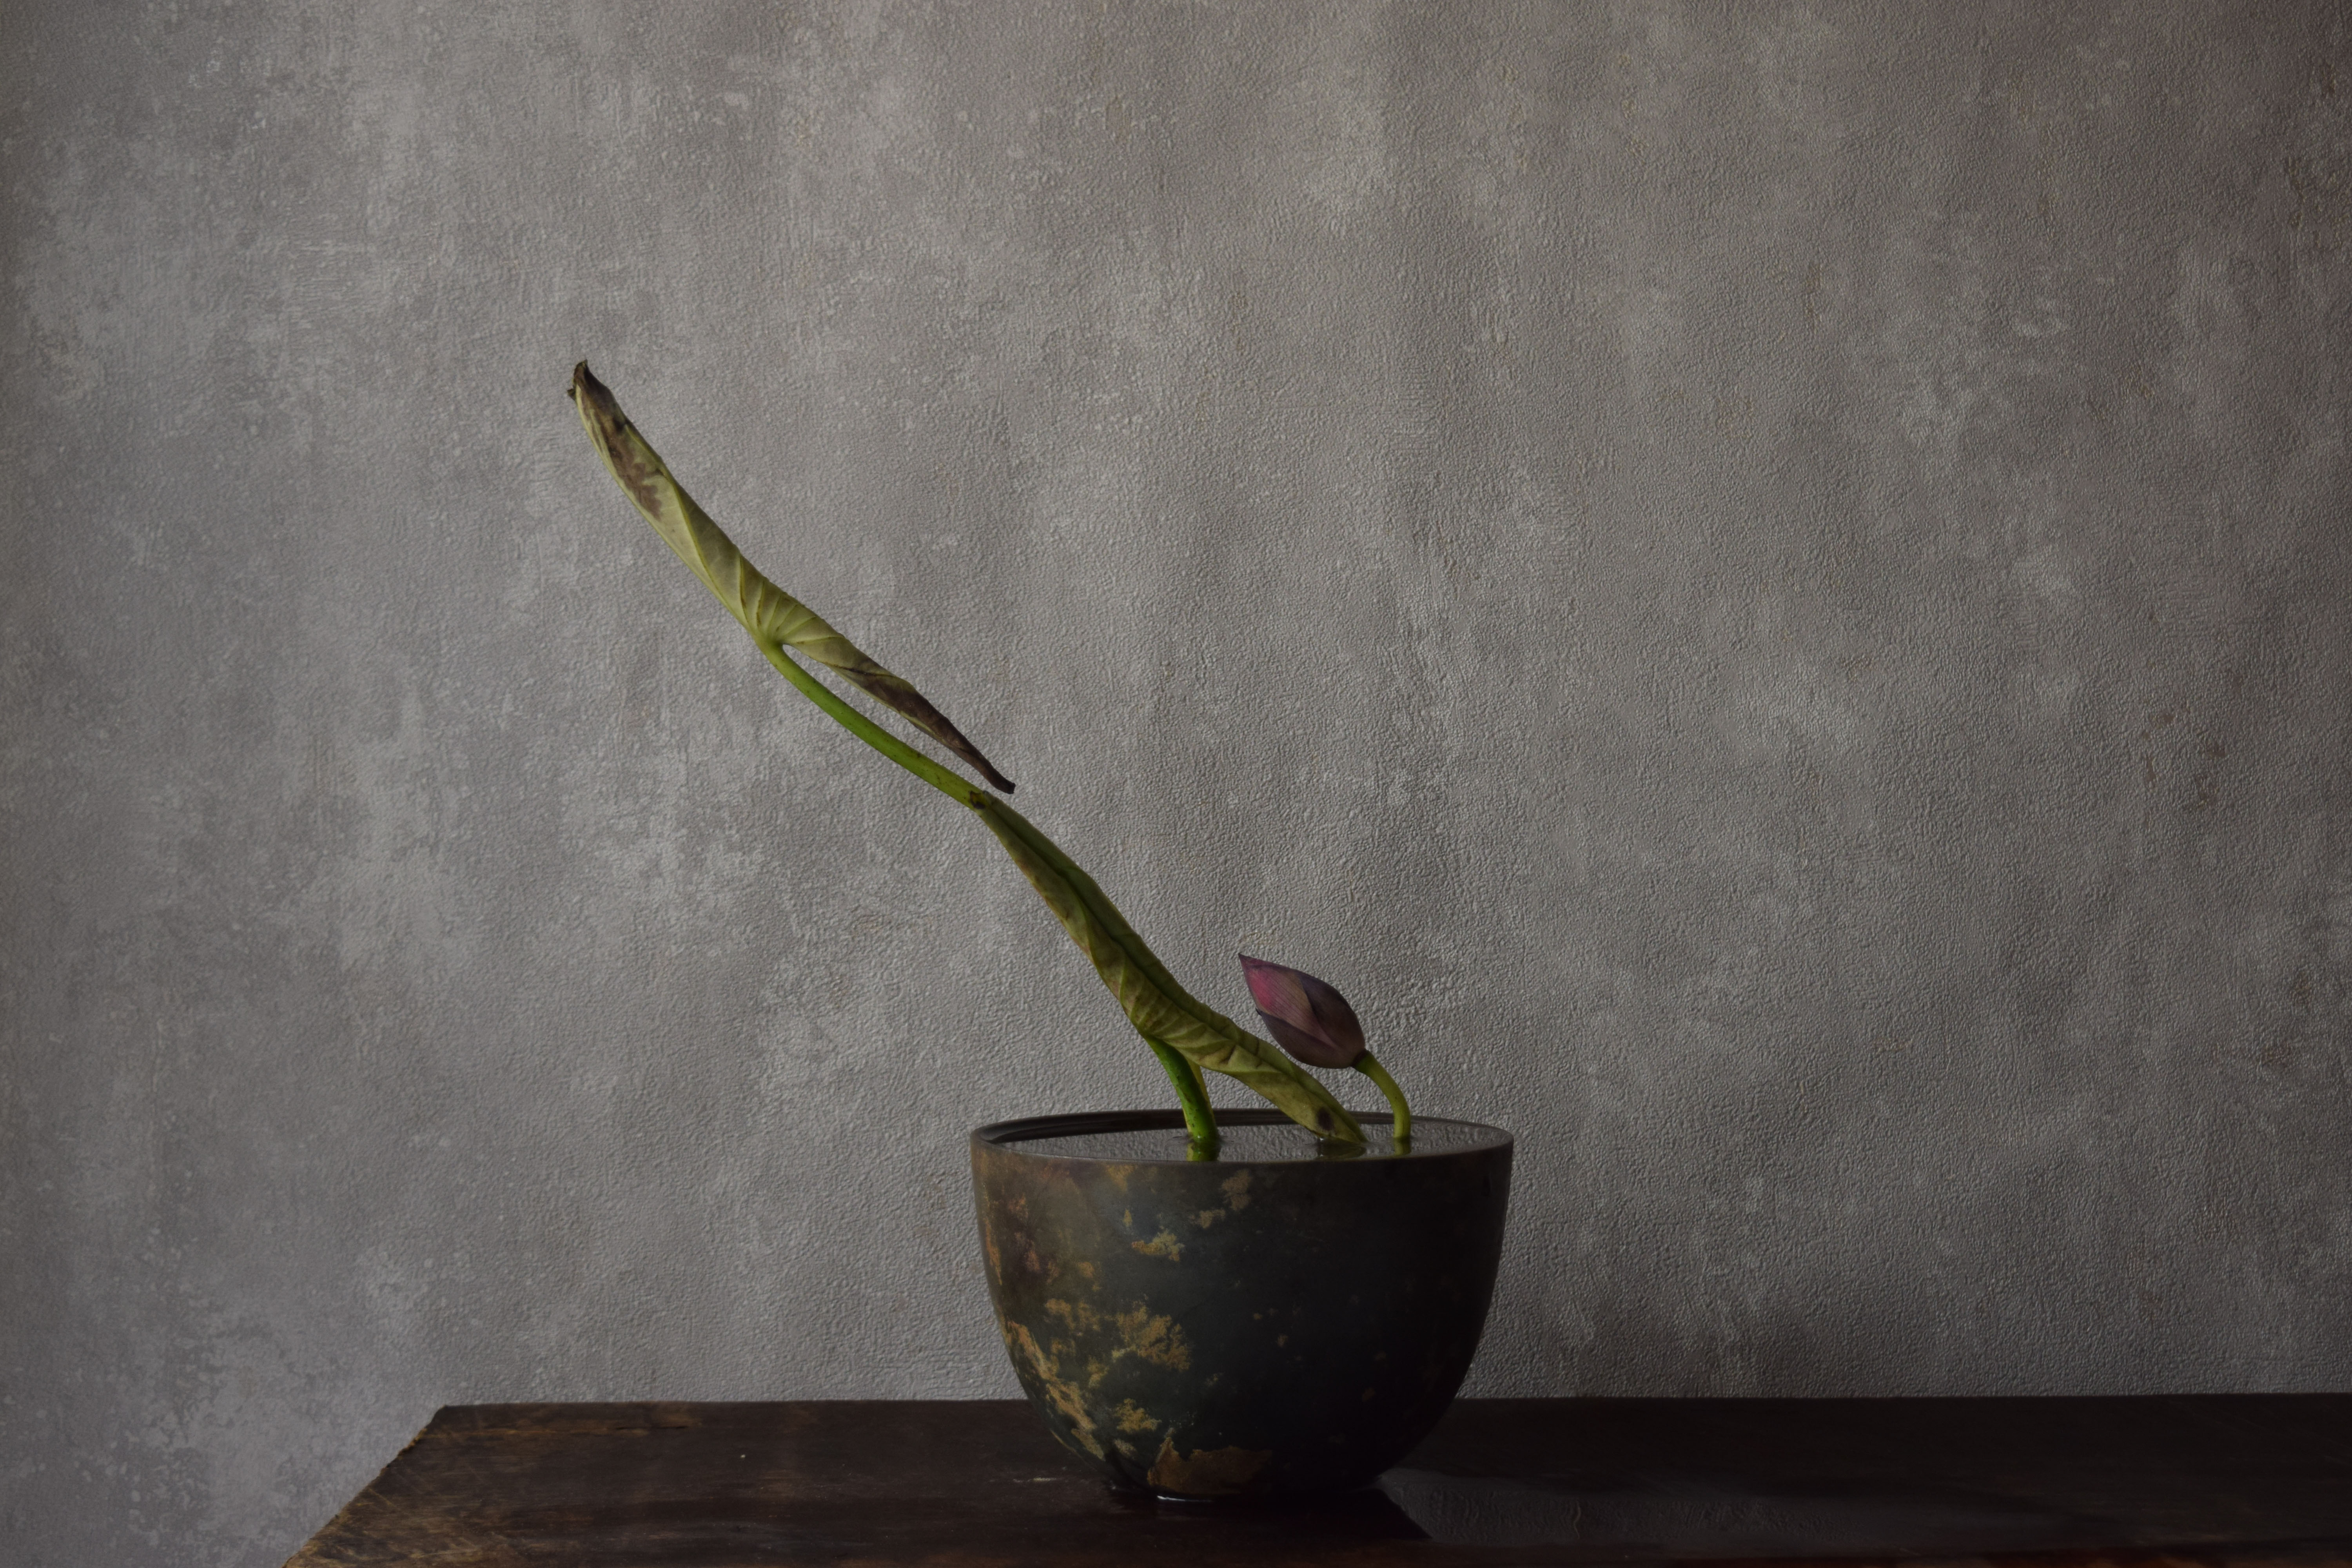 We will create a space through plants. Beauty that circulates.